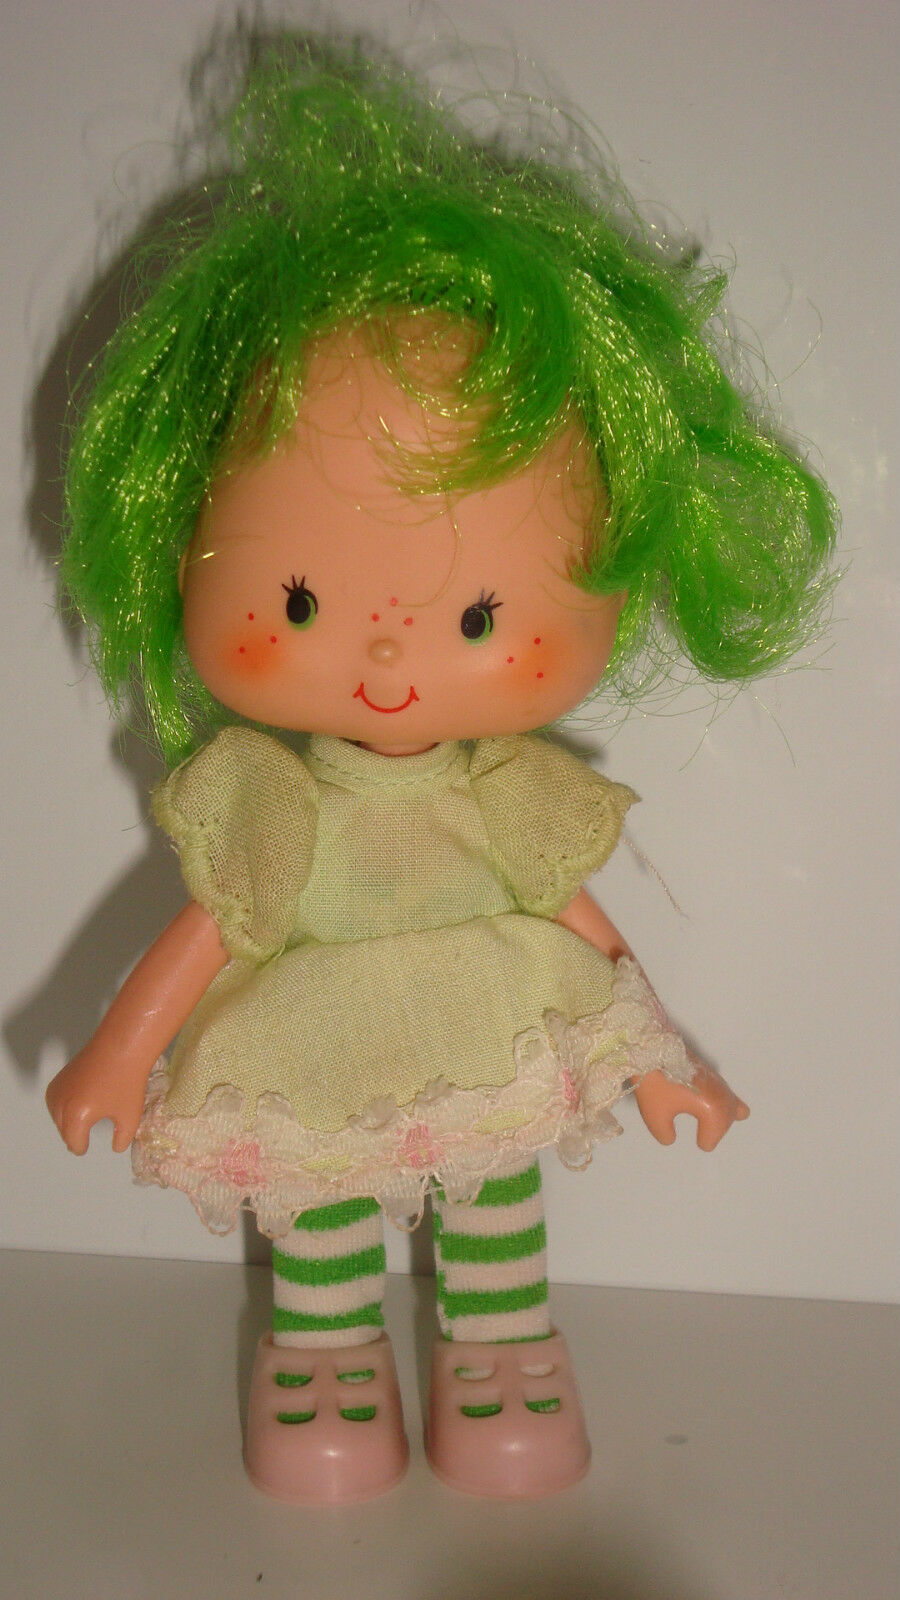 Old Doll Strawberry Shortcake 1979 File Cloth Citronella (14x8cm)